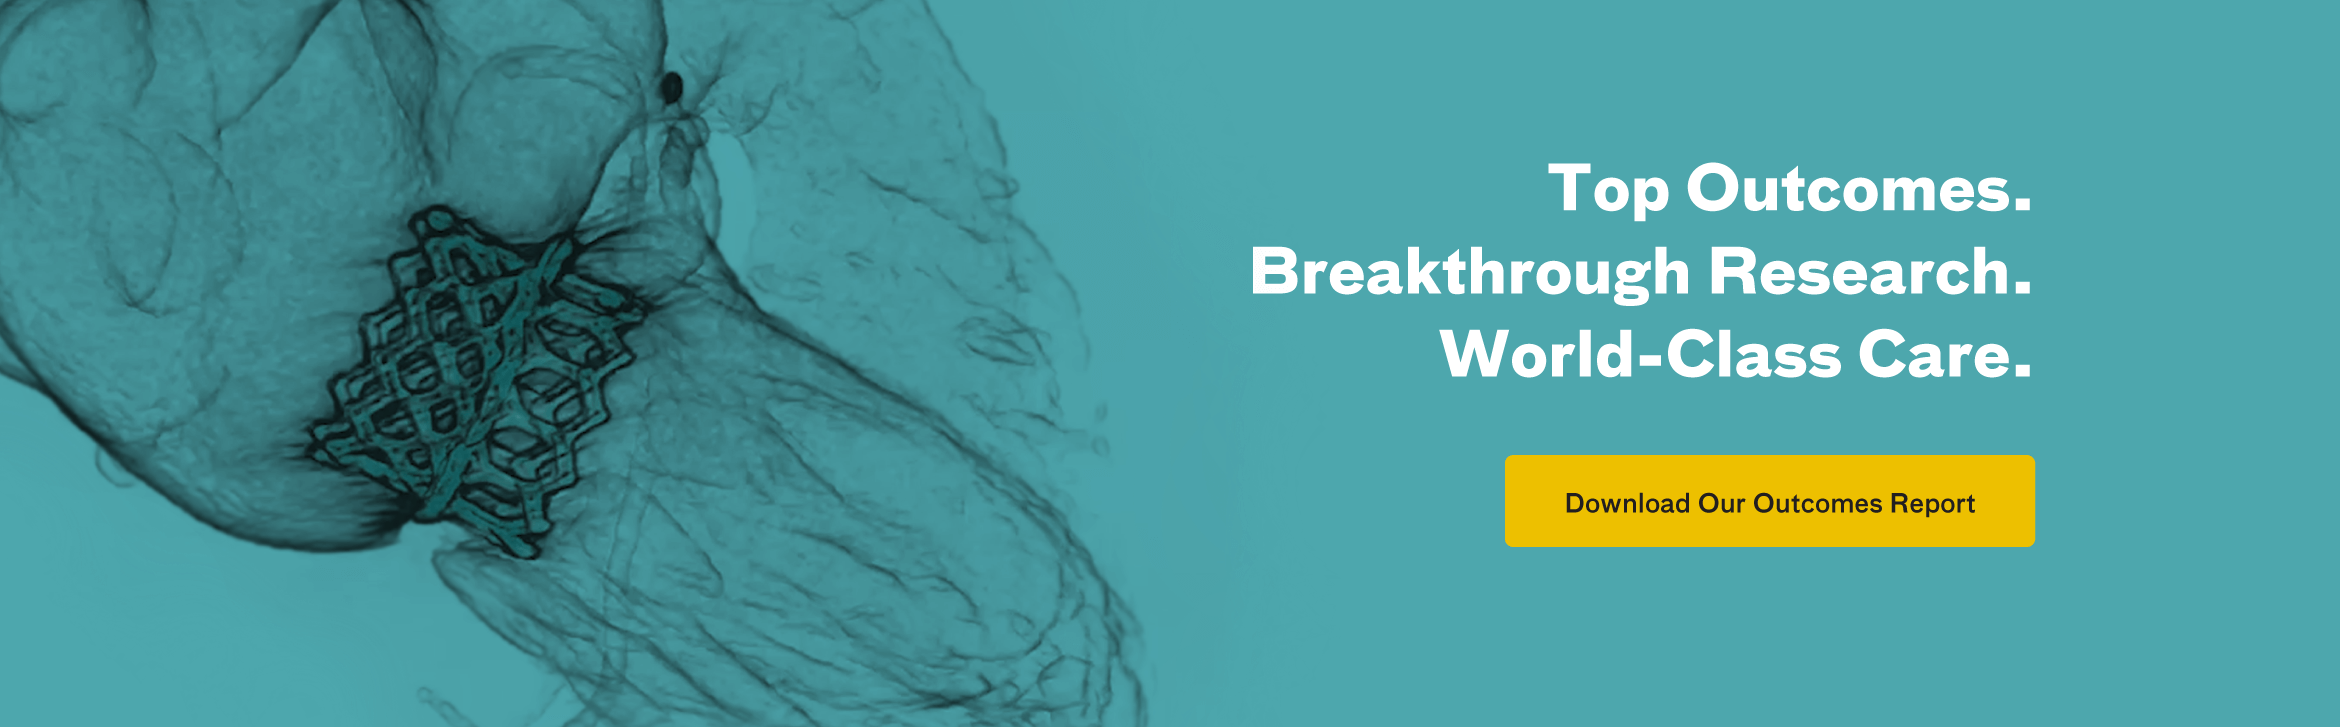 Top Outcomes. Breakthrough Research. World-class Care. Download Our Outcomes Report.